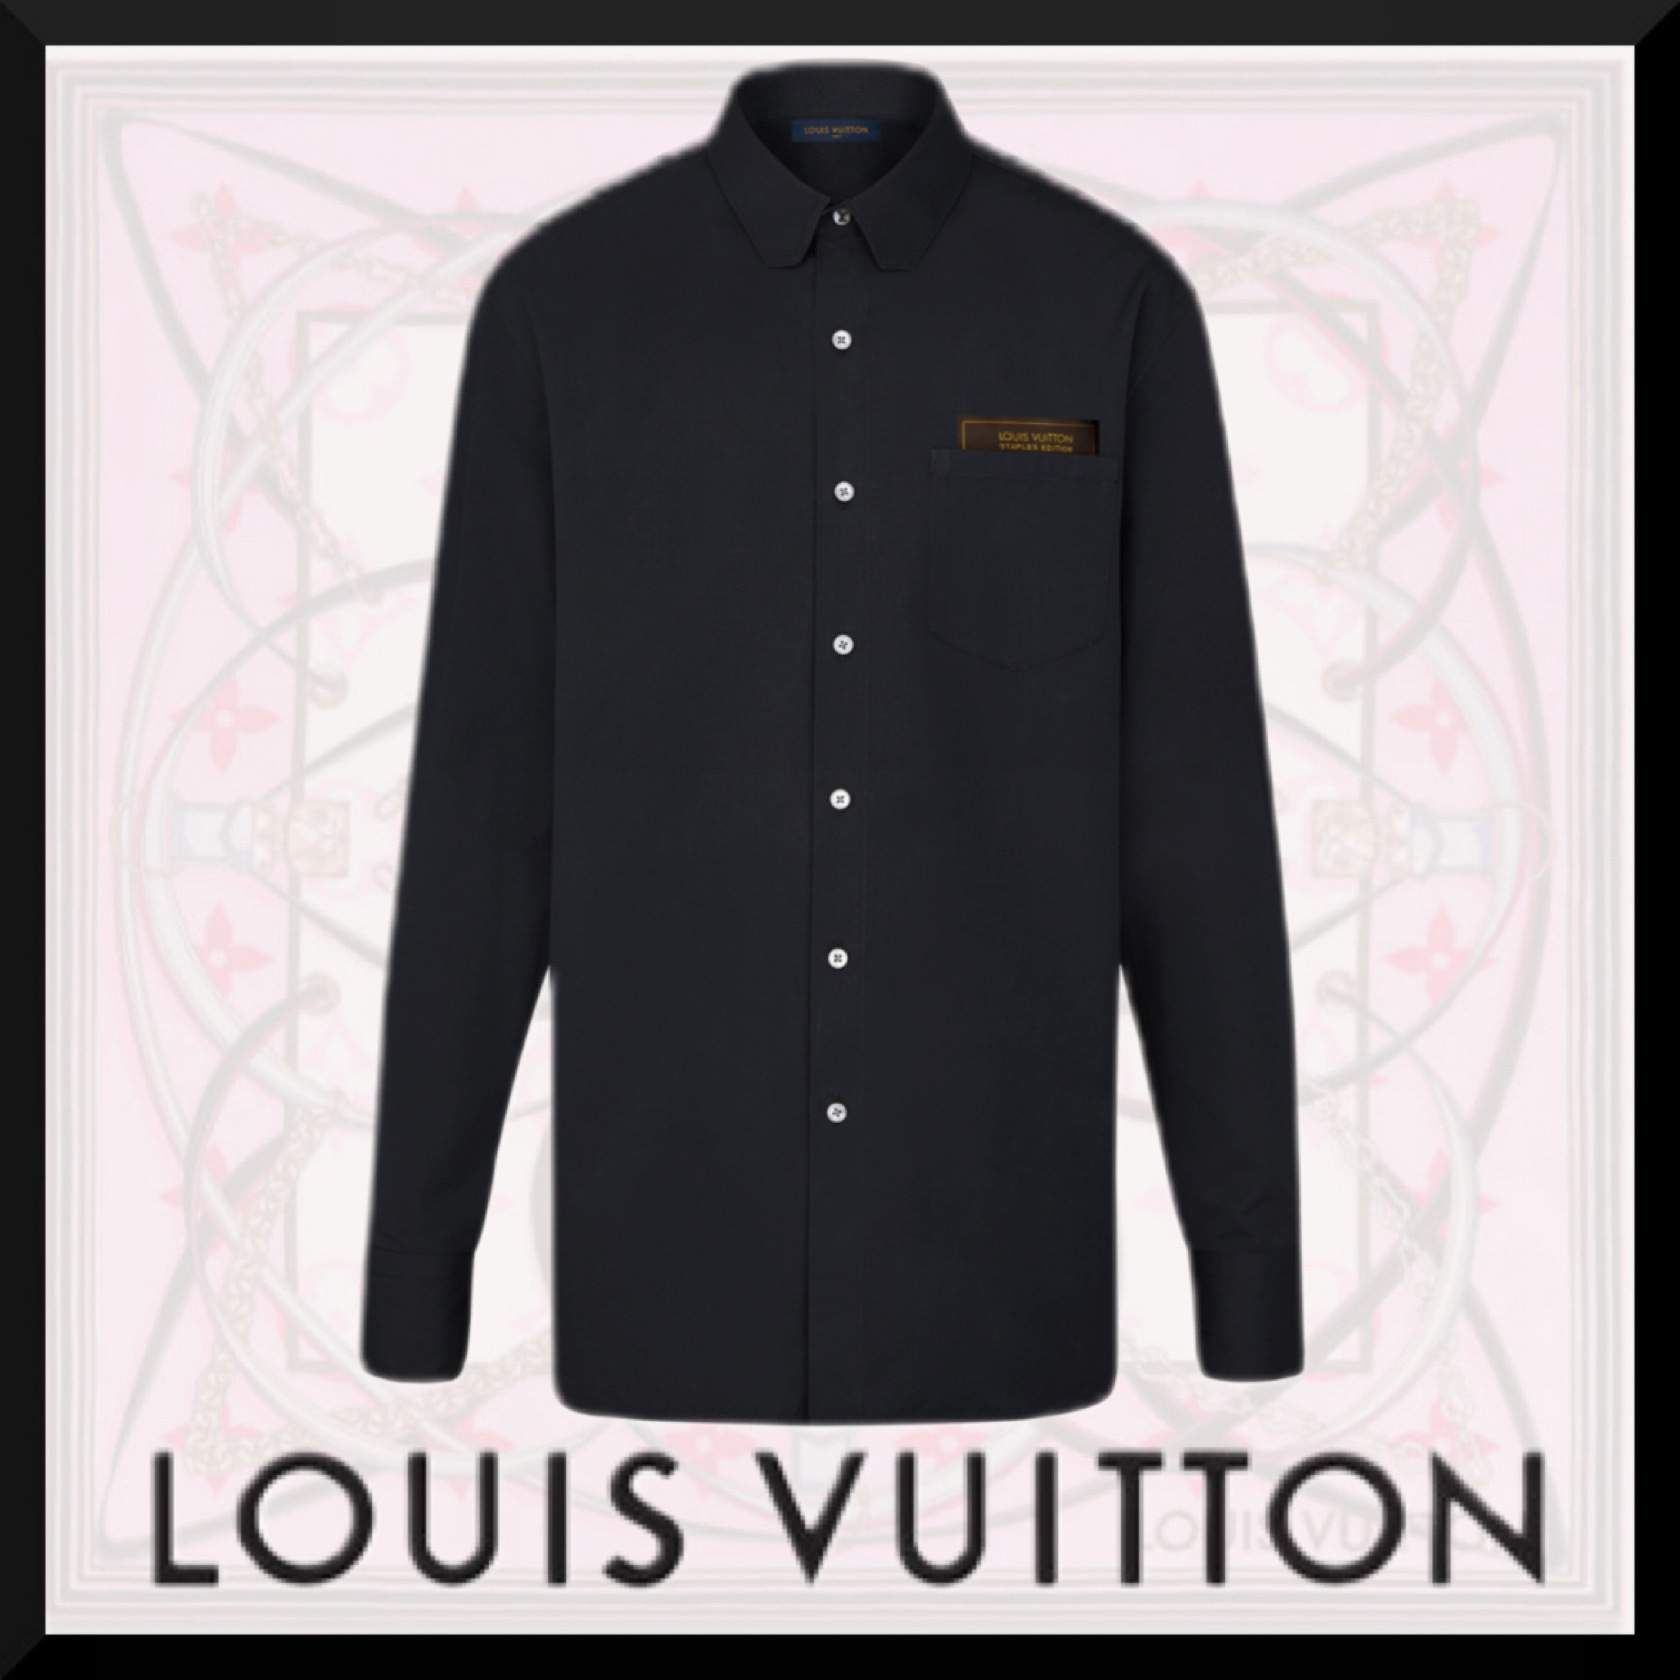 ss 新作 大人気 LouisVuitton DNAシャツ モダン トップス (Louis Vuitton/シャツ) 1A5NY9